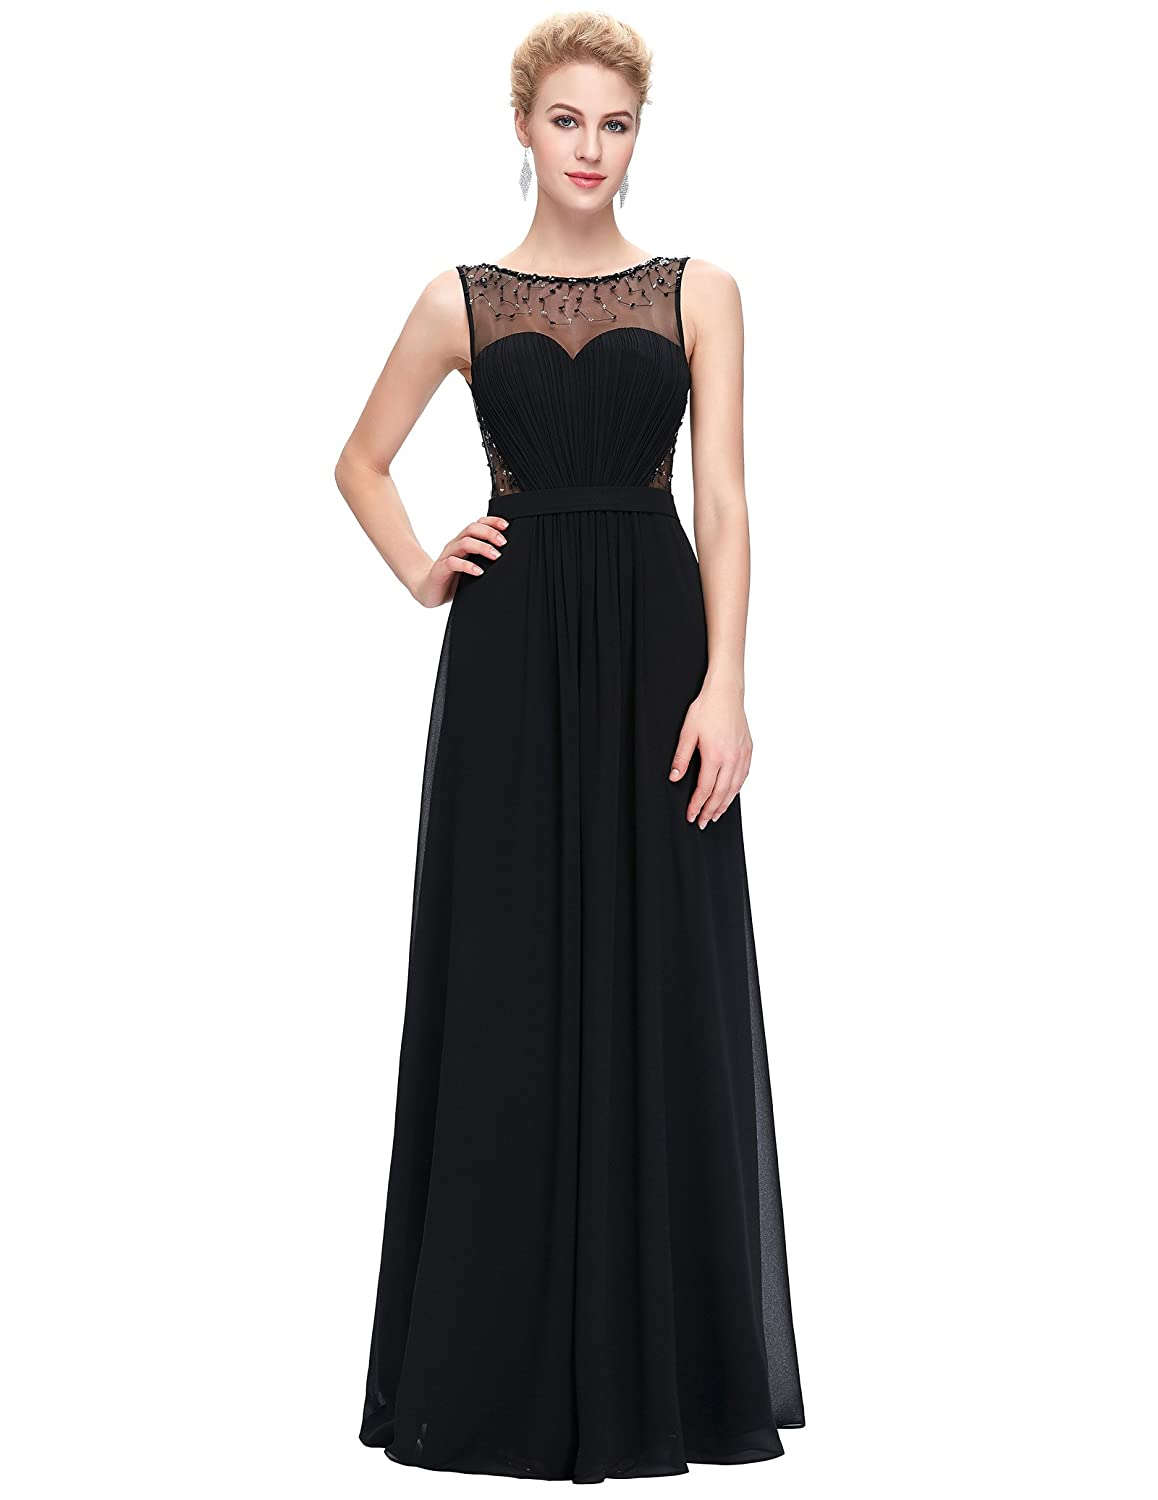 bef16fba746d Belle Long Prom Dress Elegant Maxi Length Evening Party Wedding Party Full  Dress ST61  Amazon.co.uk  Clothing